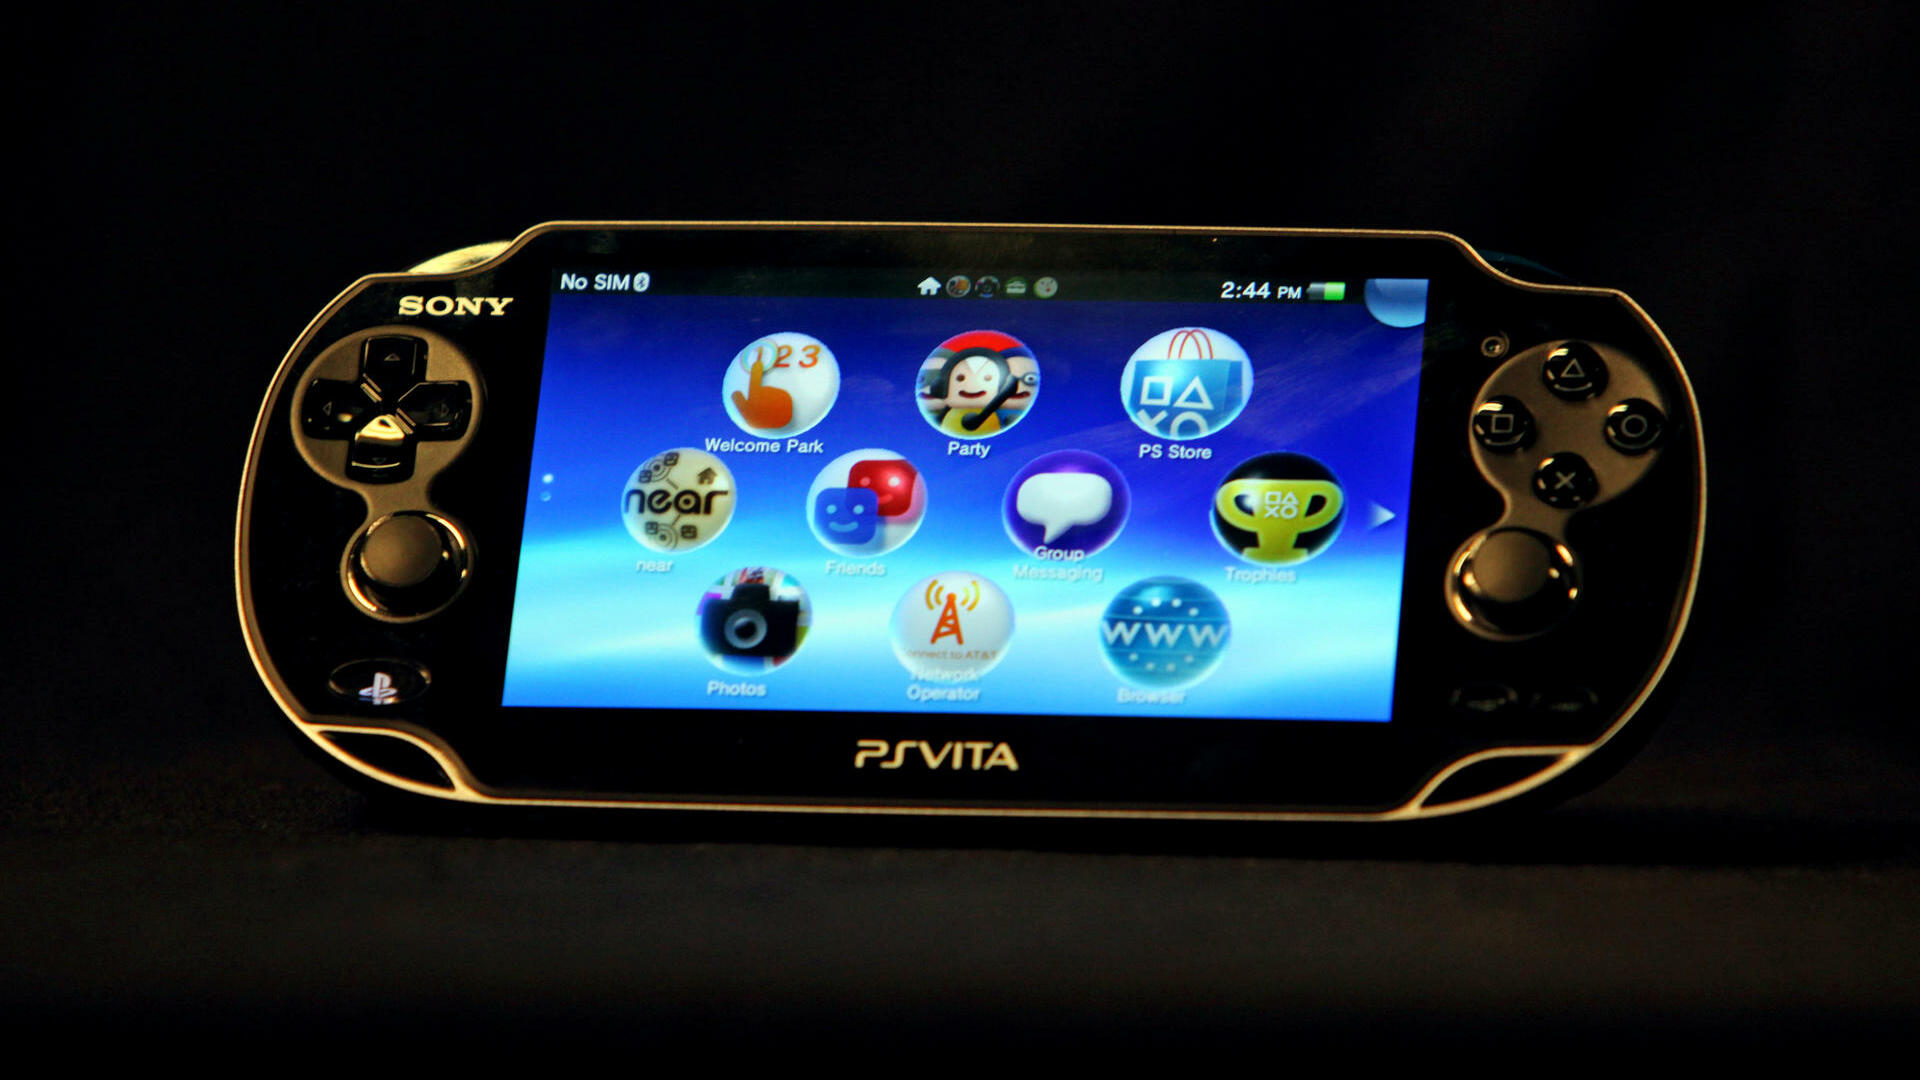 Playstation Vita, Sony's new high-powered handheld console with a rear touchpad. Quelle: dapd